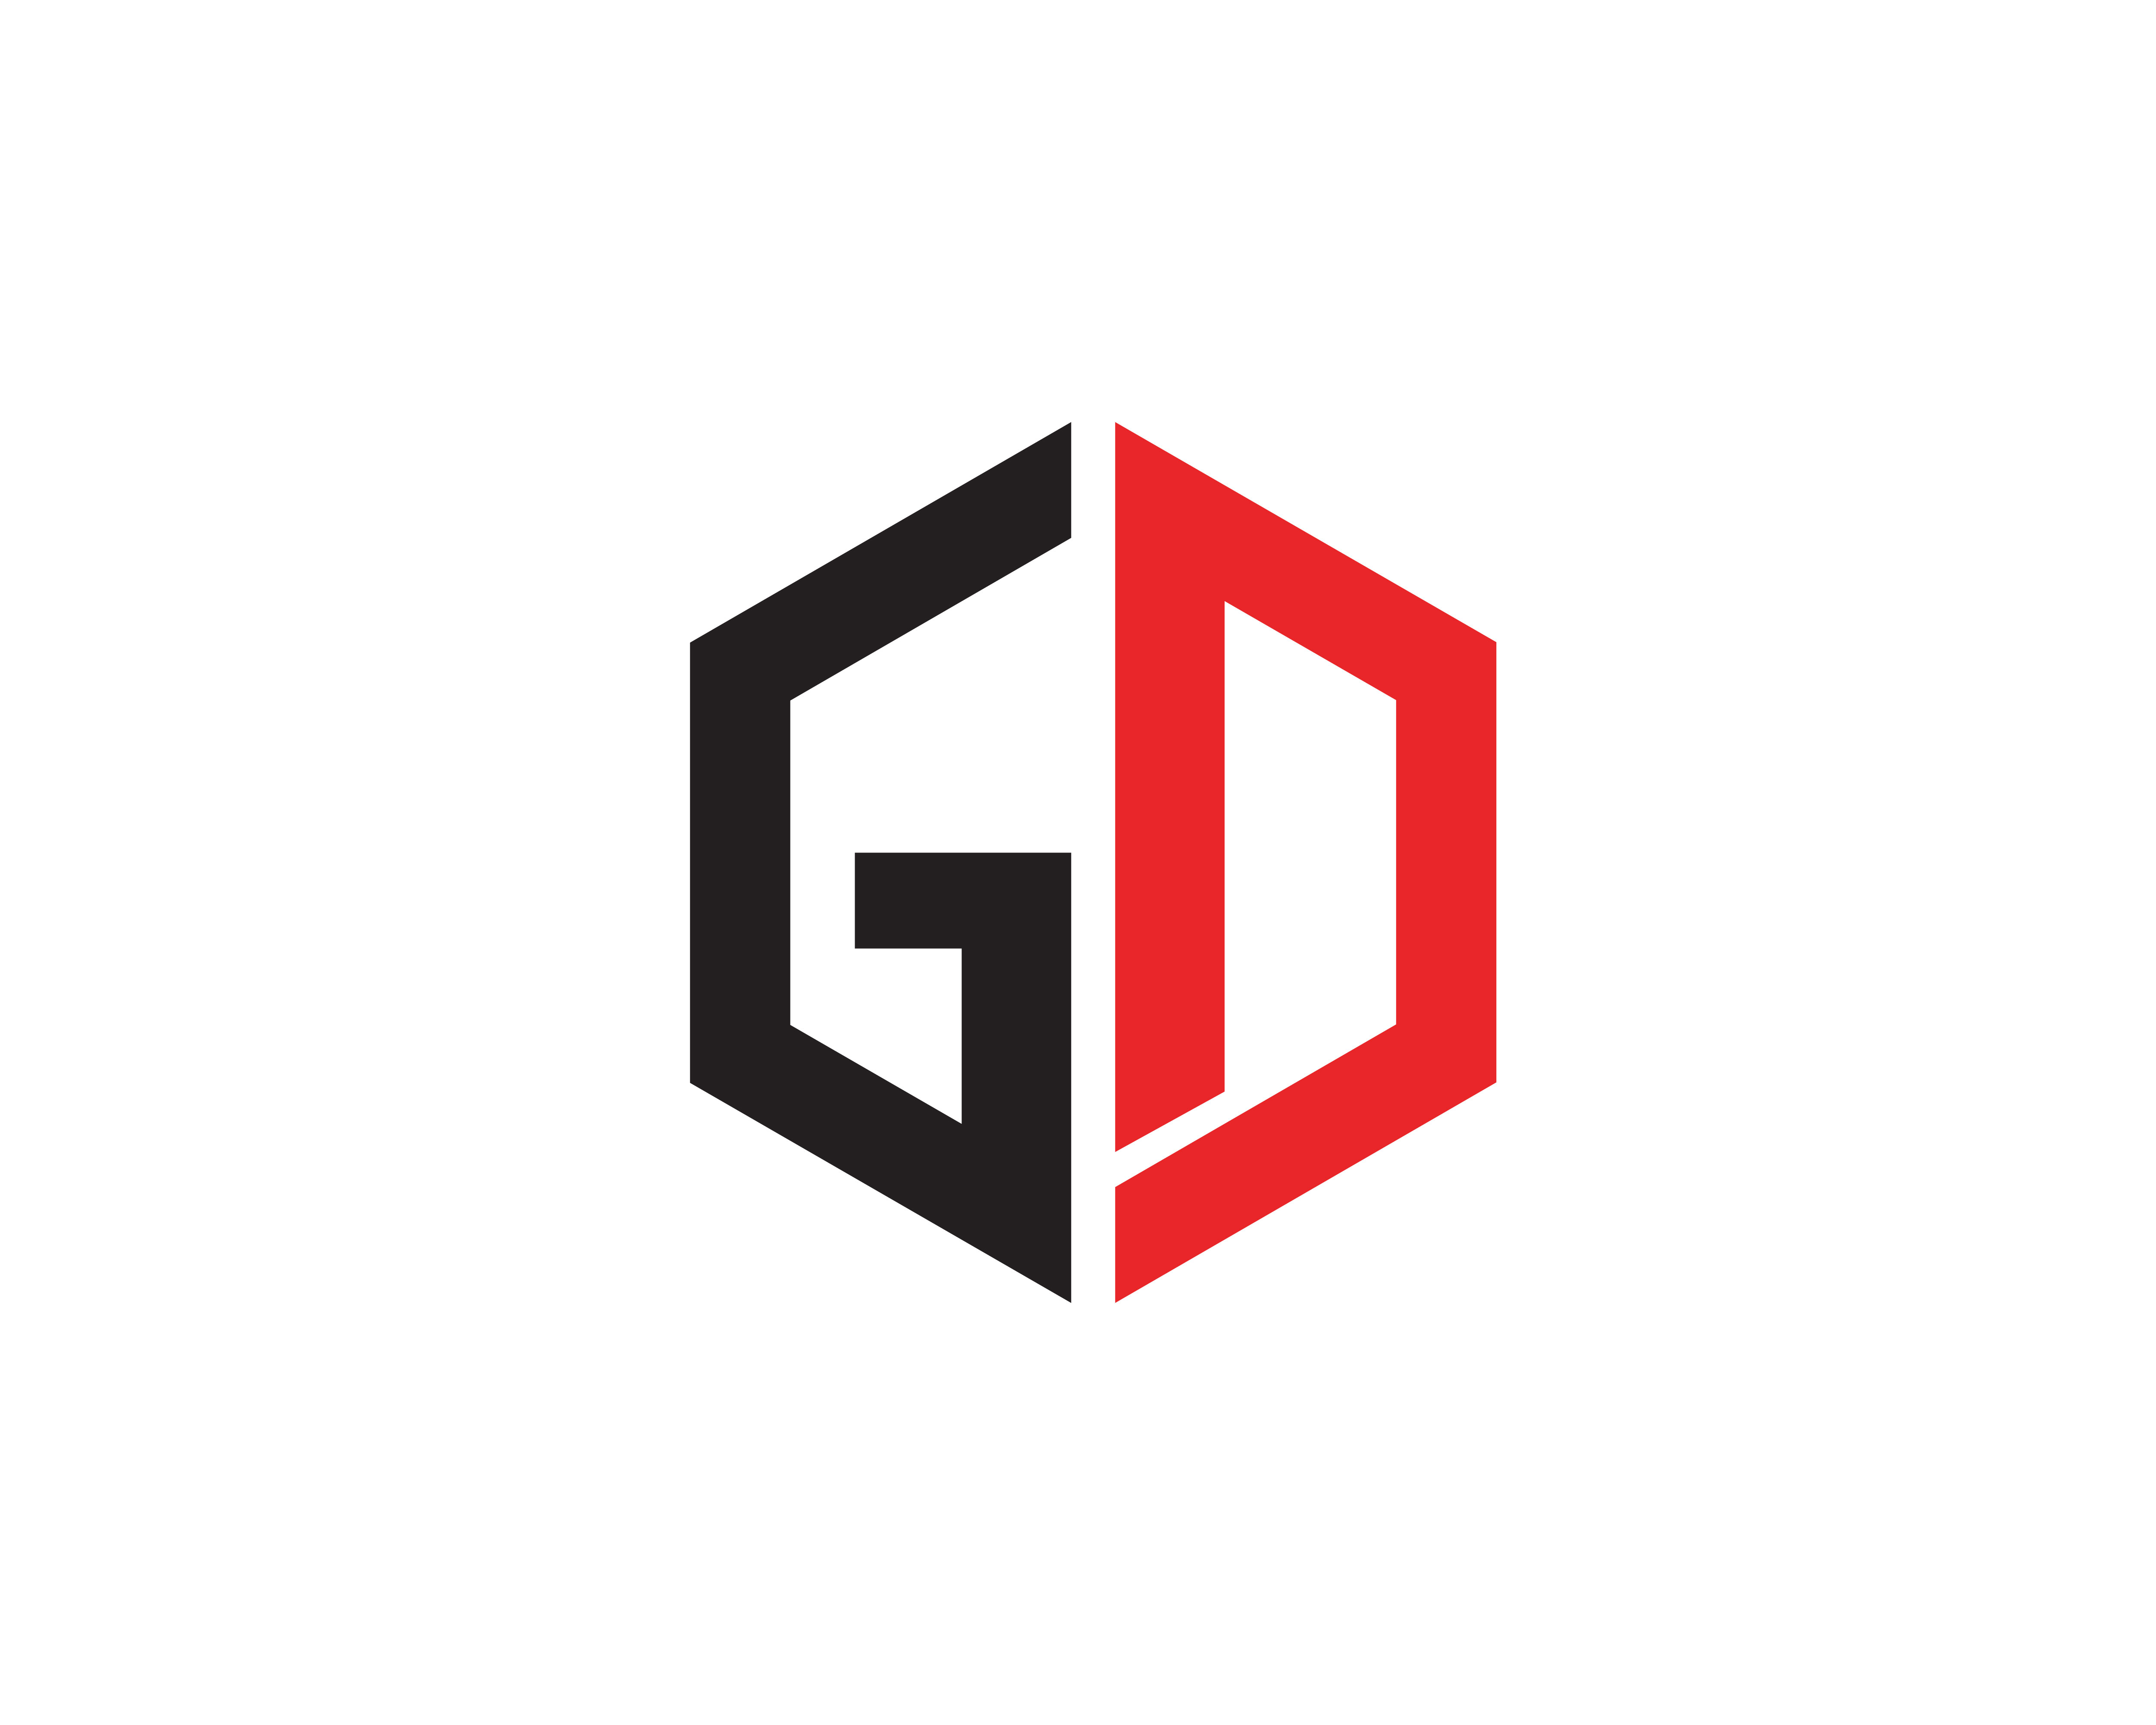 Gd Logo Free Vector Art.